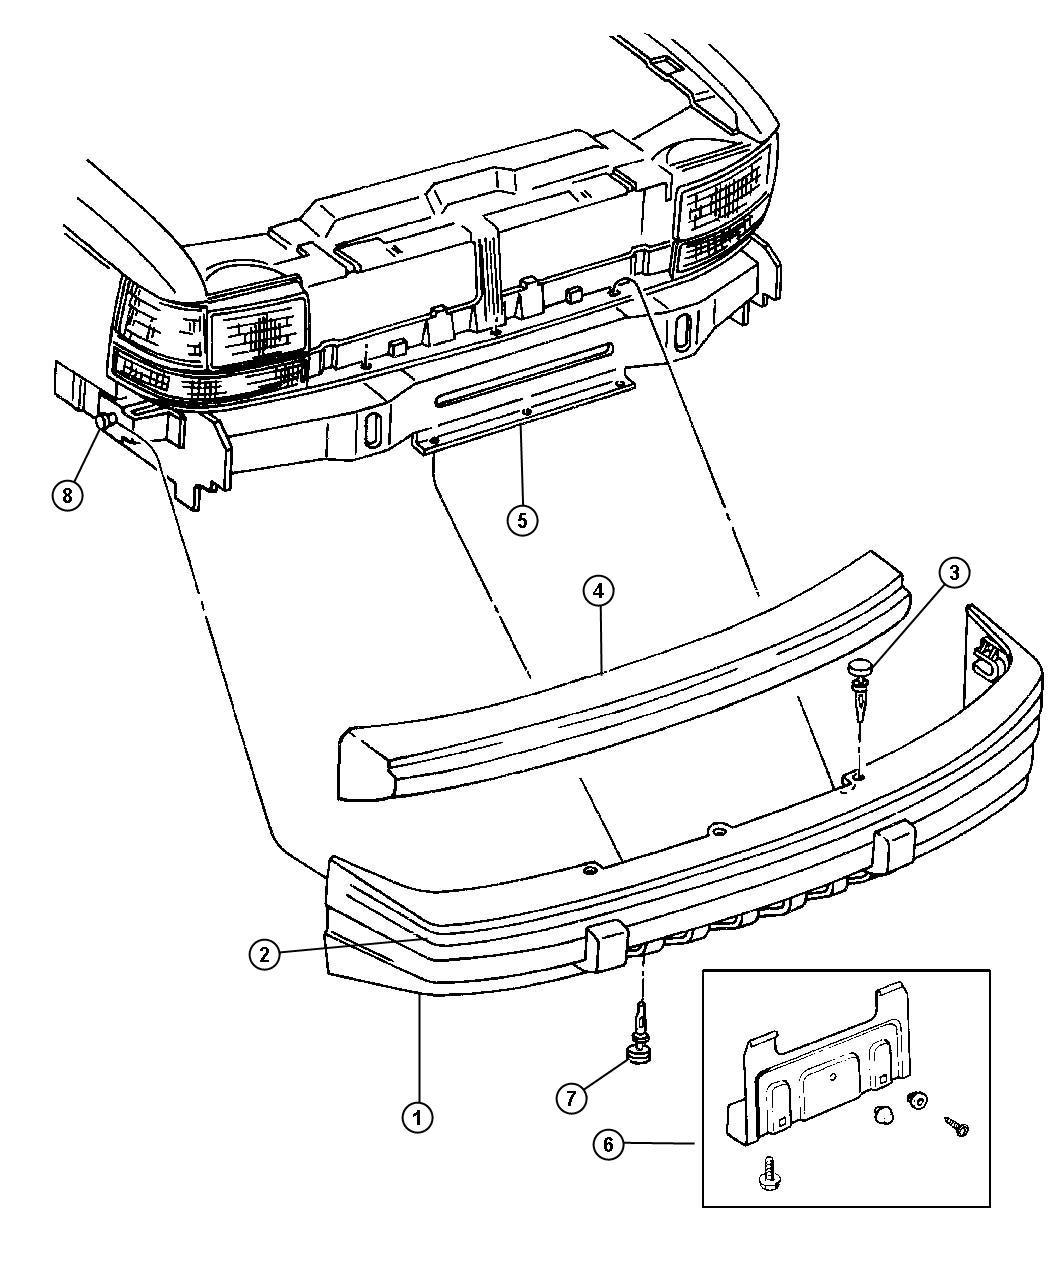 Astounding jeep cherokee parts diagram pictures best image wiring